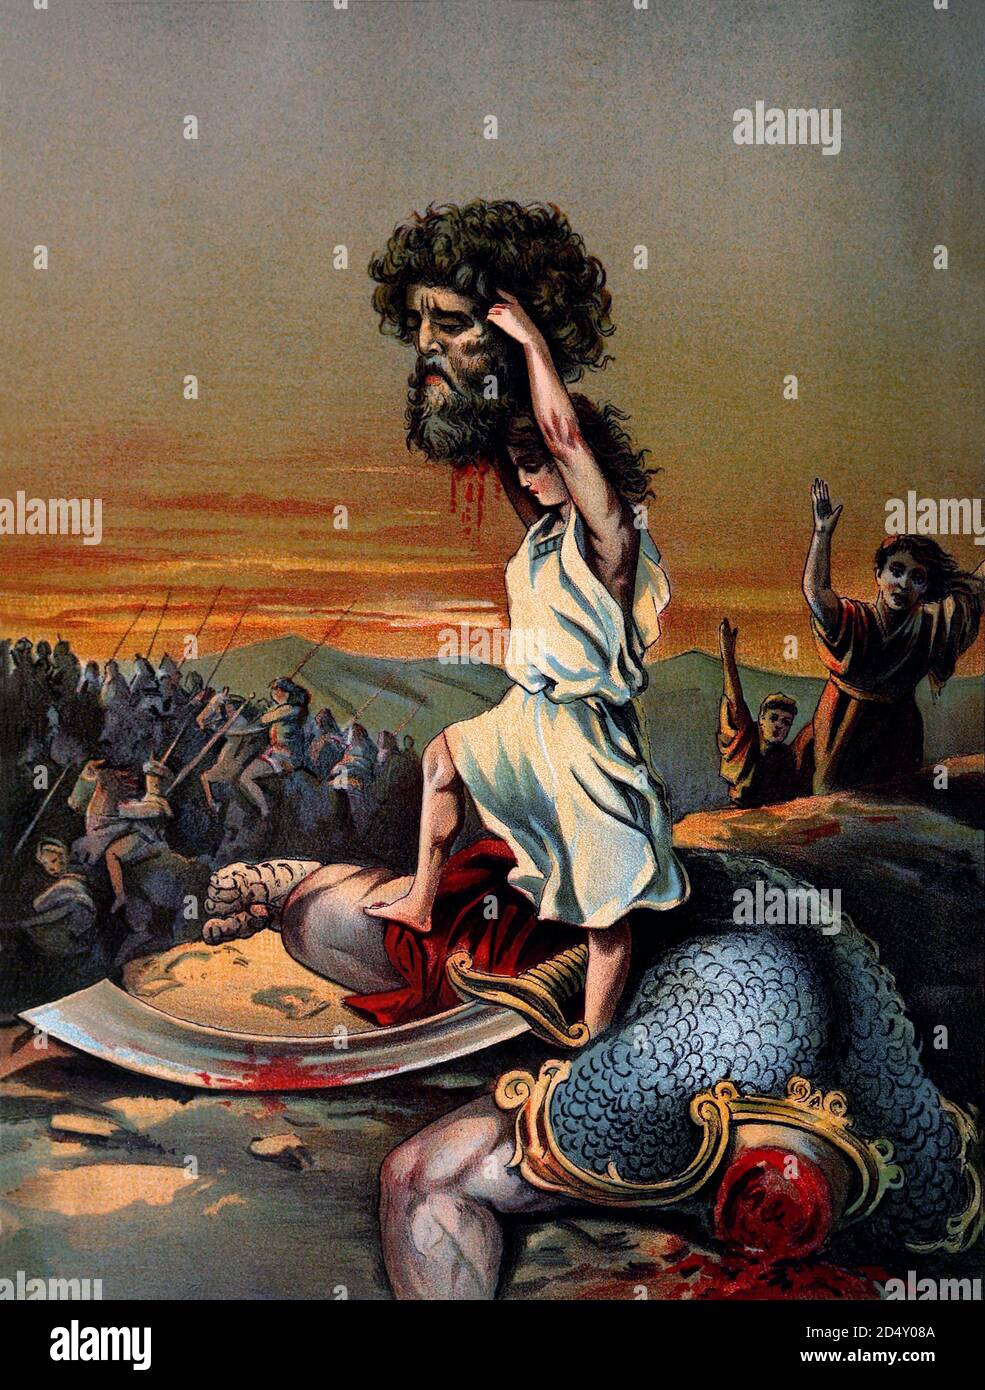 """1020 BCE c. , ISRAELE : The jewish KING DAVID ( 1010 c.- 970 BC ) with the beheaded head of giant GOLIATH. David was the author of psalms and is described in the Hebrew Bible as the 3th king of the United Monarchy of Israel and Judah . Lithographic illustration , pubblished in book """" Sweet stories of God """" by Josephine Pollard ( 1899 ) . Jesus Christ is described as being descended from David in the Gospels of Matthew and Luke . - NOBILITY - NOBILI - RE DAVIDE - GIGANTE GOLIA - ISRAELE - OLD TESTAMENT - VECCHIO TESTAMENTO - BIBBLIA - BIBBLE - EBREO - POPOLO EBRAICO - illustrazione - illustrati Stock Photo"""